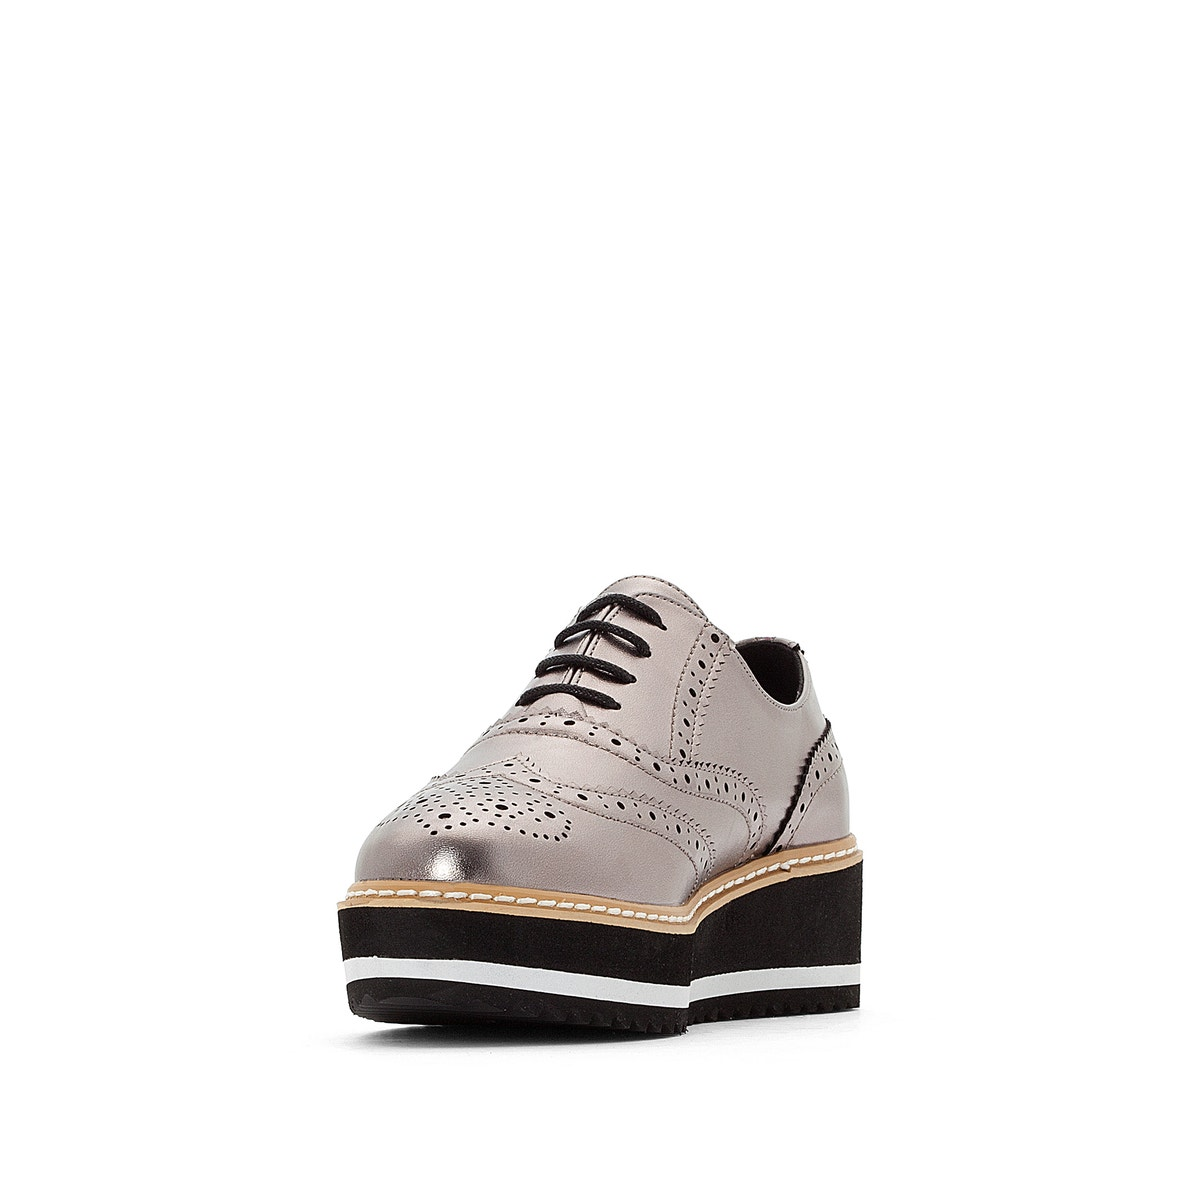 La ROToute Collections Damenschuhe Two-Tone Brogues With Two-Tone Damenschuhe Sole c3ce81